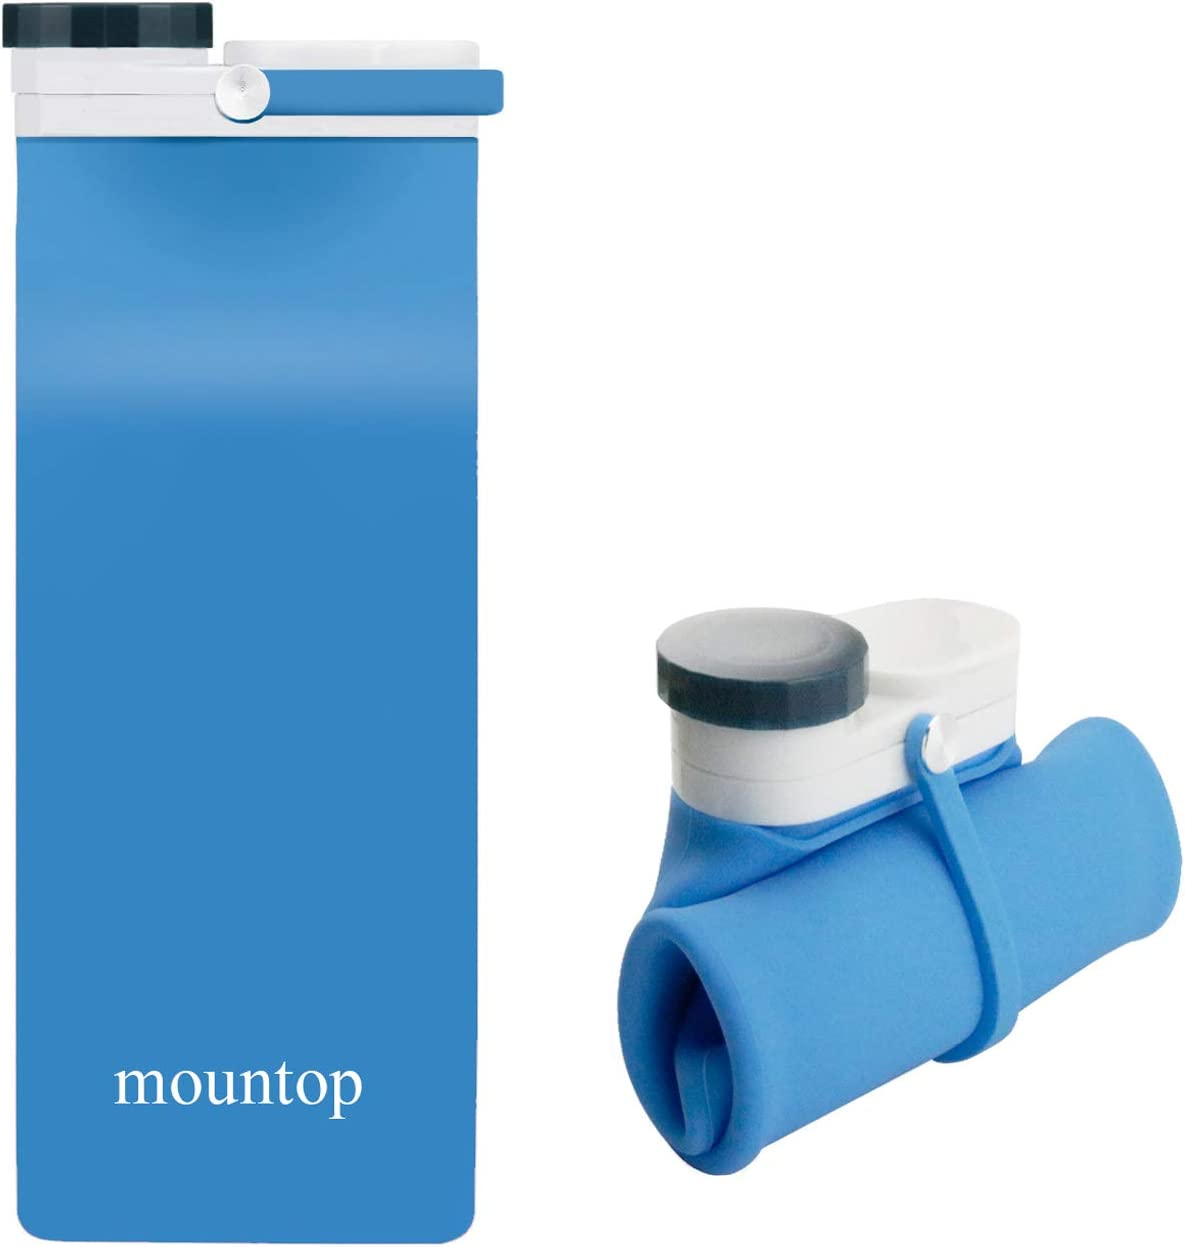 mountop Collapsible Water Bottle, Portable Food Grade Silicone Foldable Travel Reusable Leak Proof Water Bottles for Traveling Running Fitness BPA Free, 20oz, Dark Blue